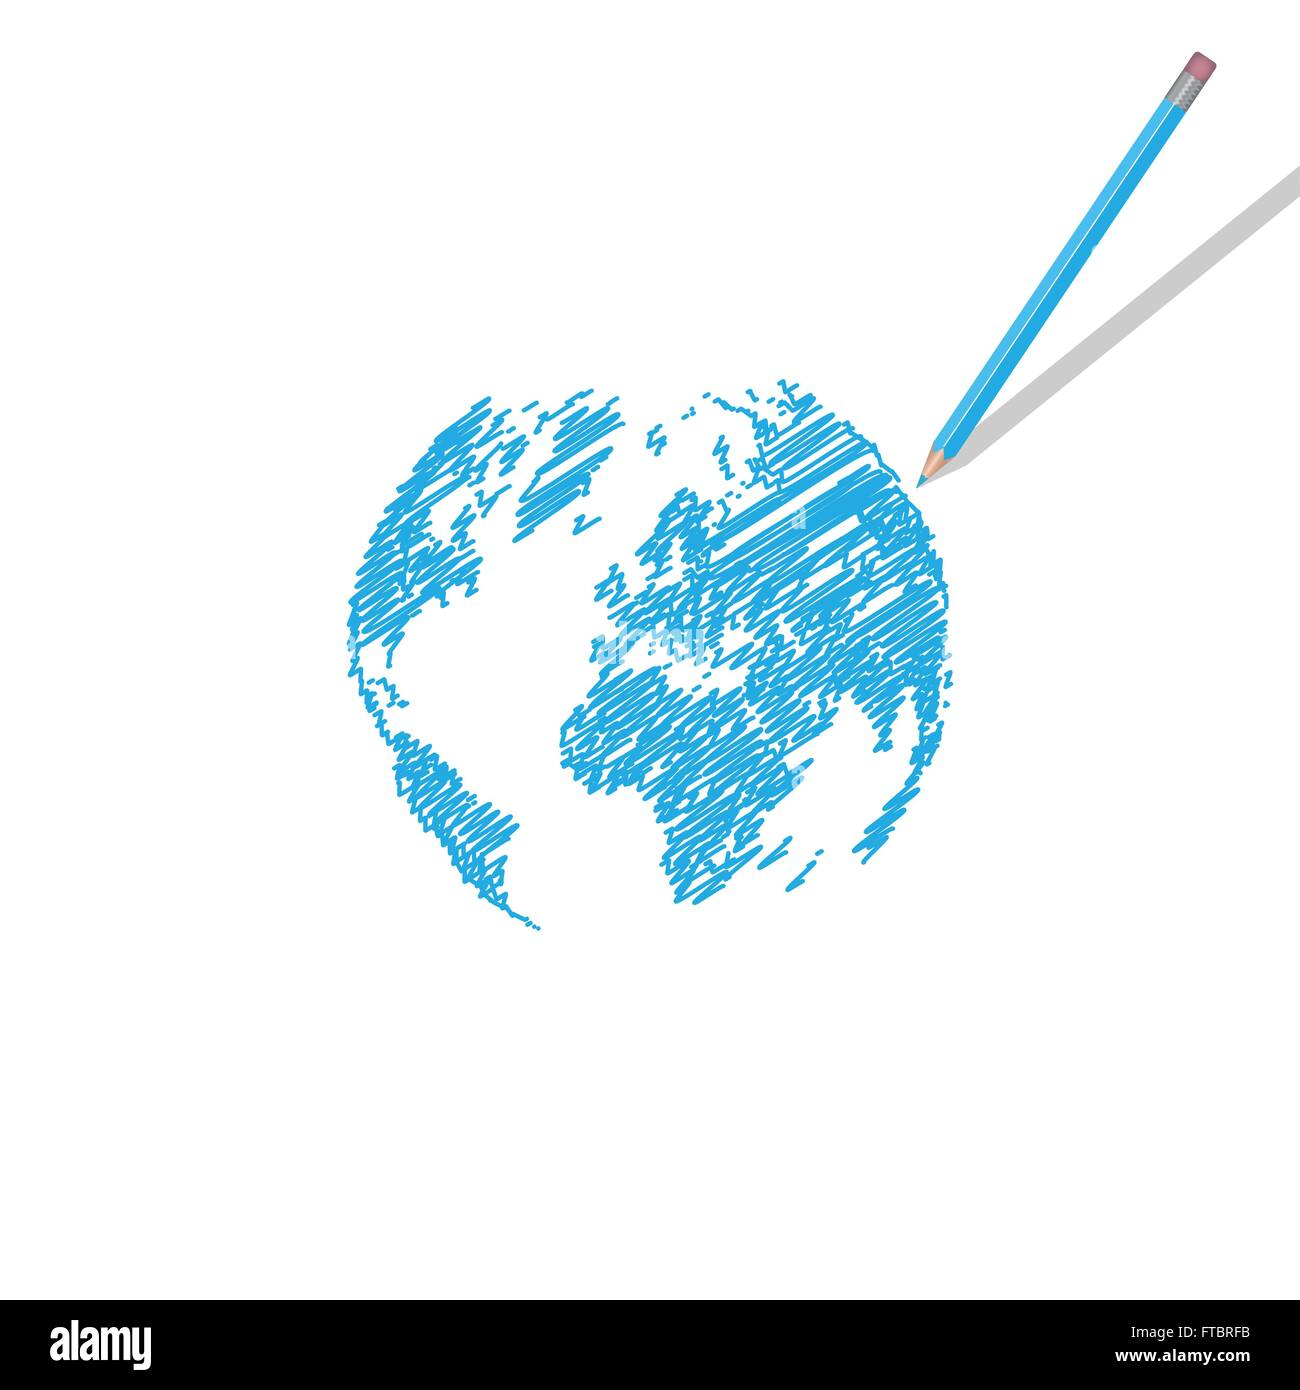 Funny world map illustration stock photos funny world map world map scribble illustration stock image gumiabroncs Choice Image